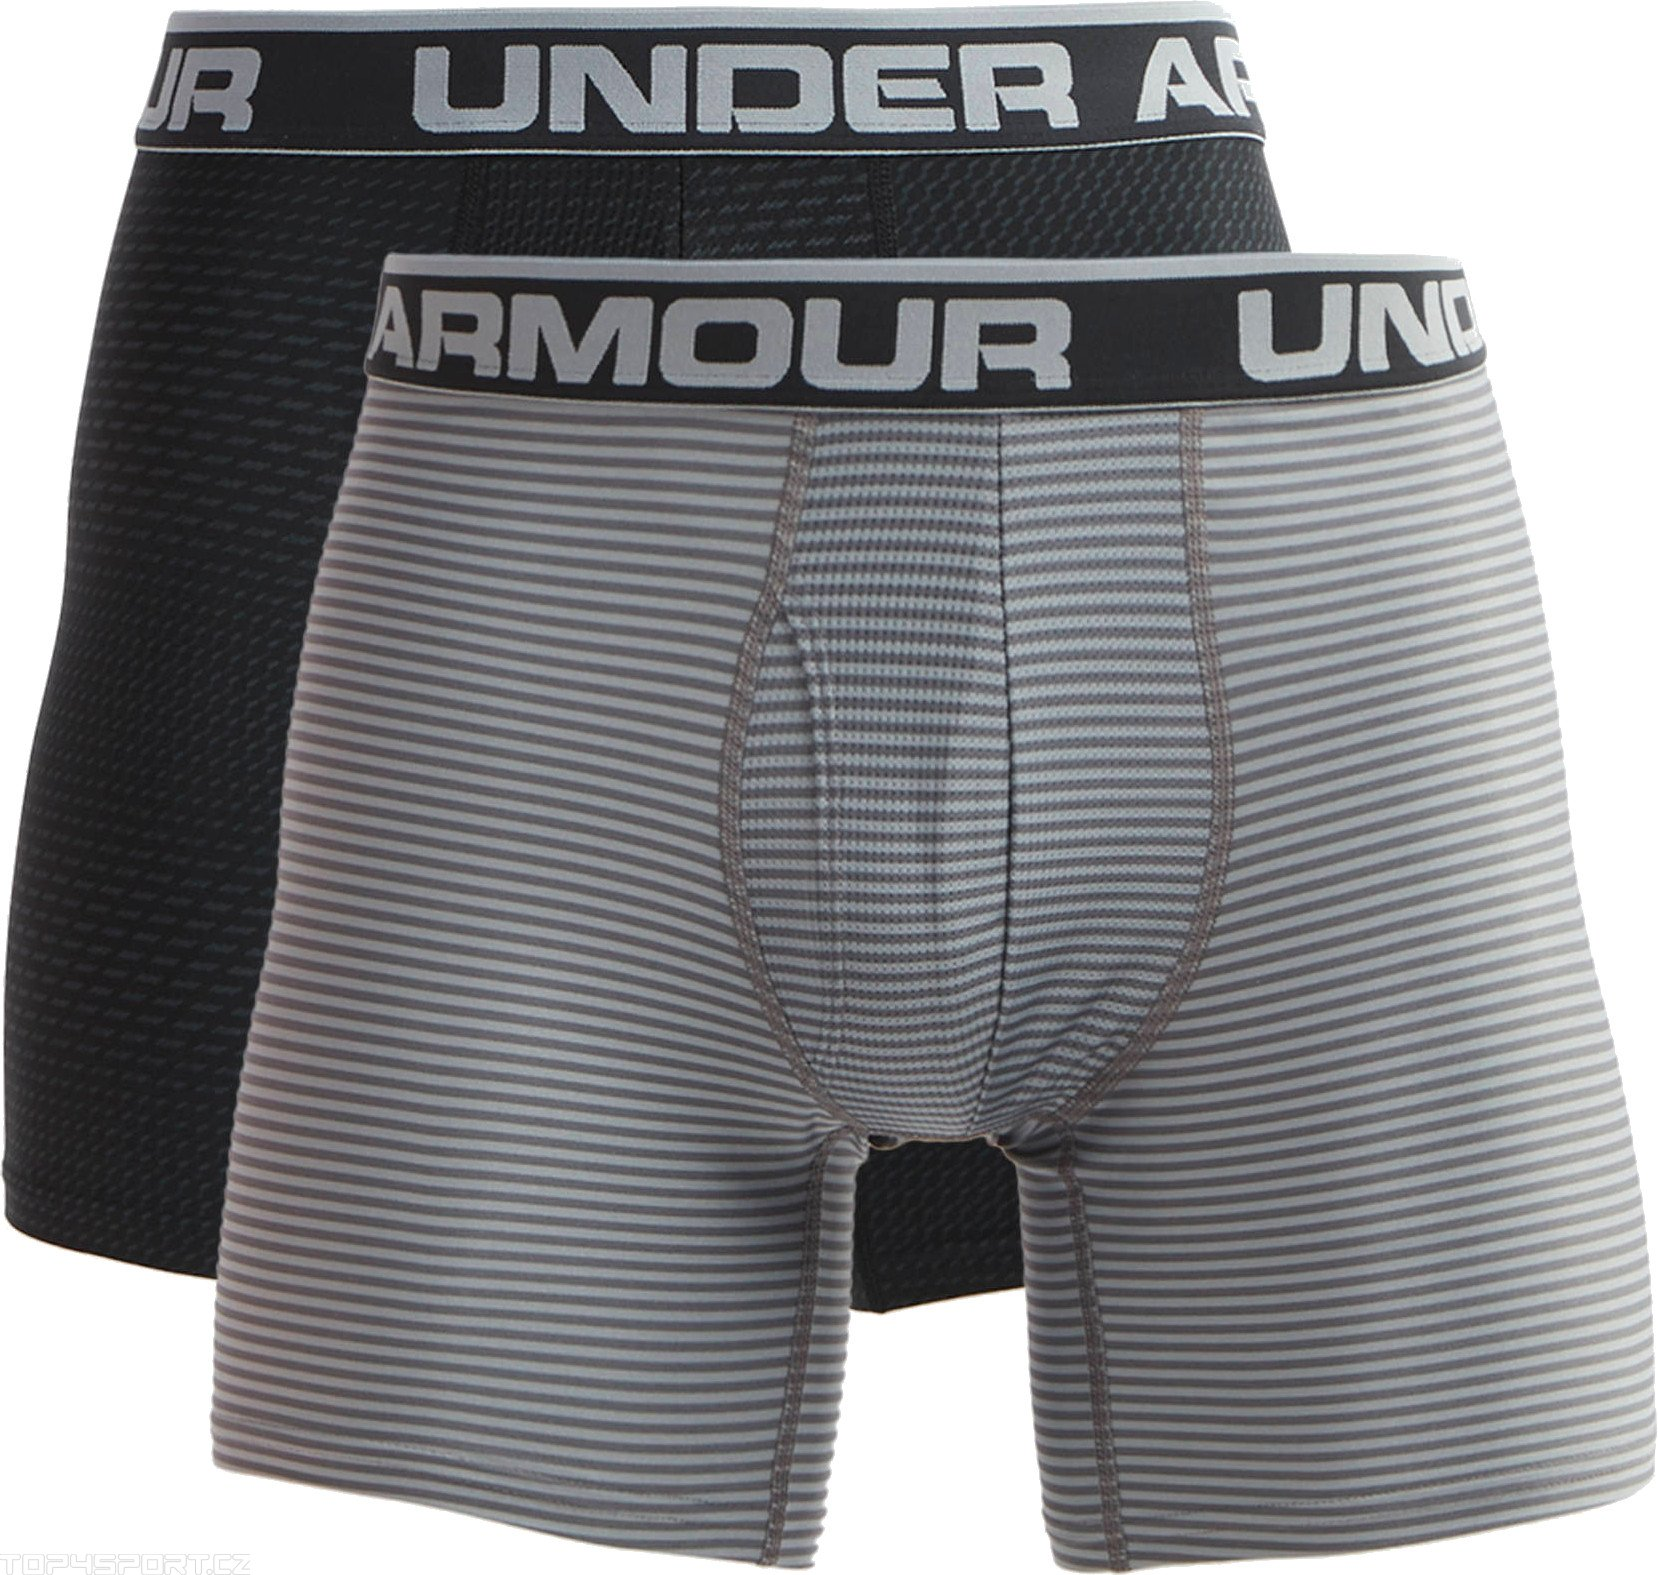 Calzoncillos bóxer Under Armour Original 6In 2 Pack Novelty